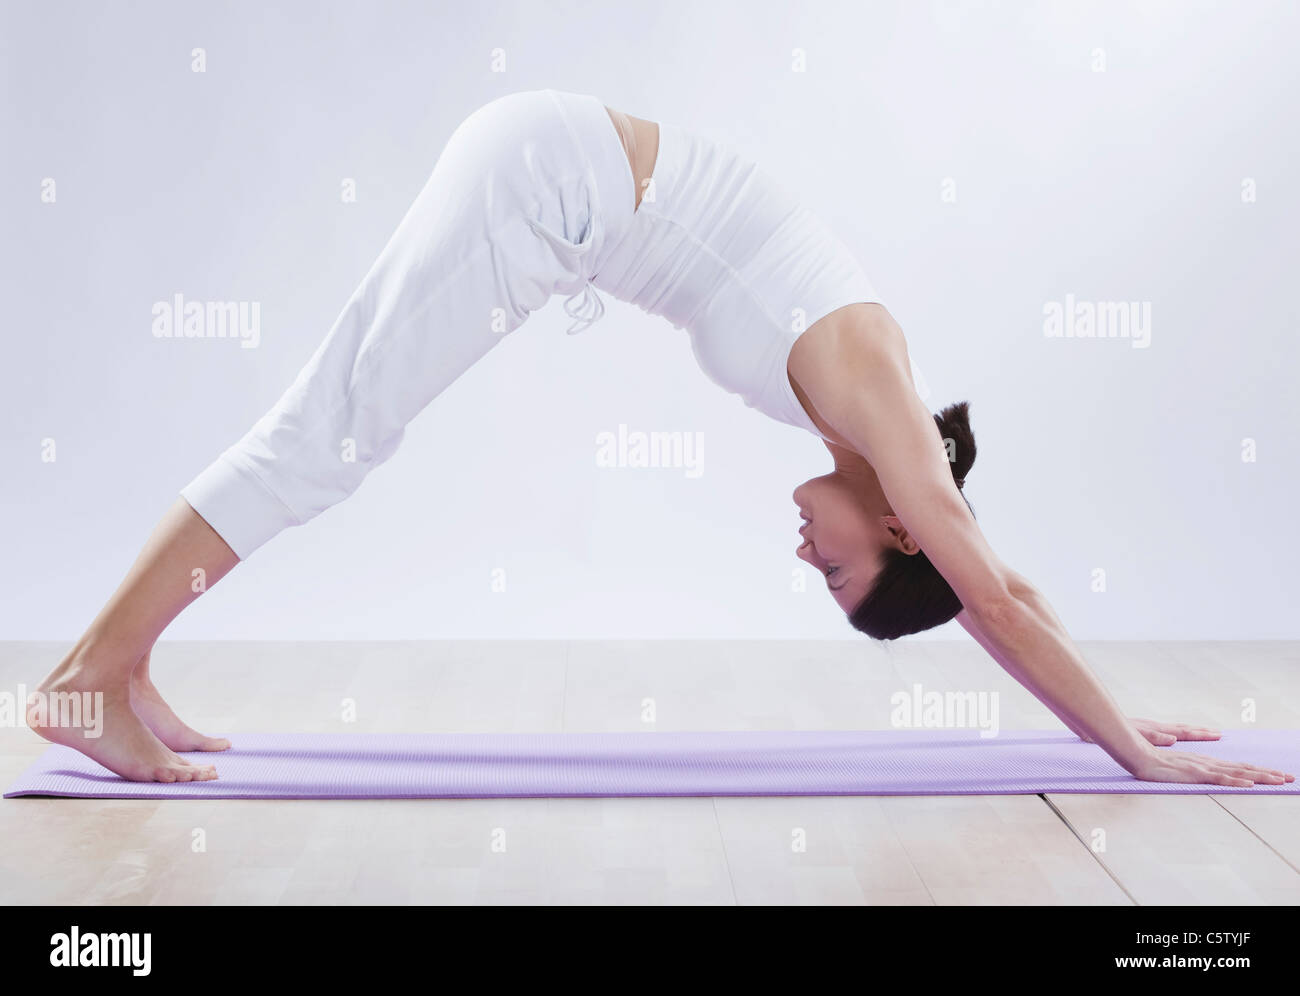 Mid adult woman doing downward facing dog position against white background - Stock Image